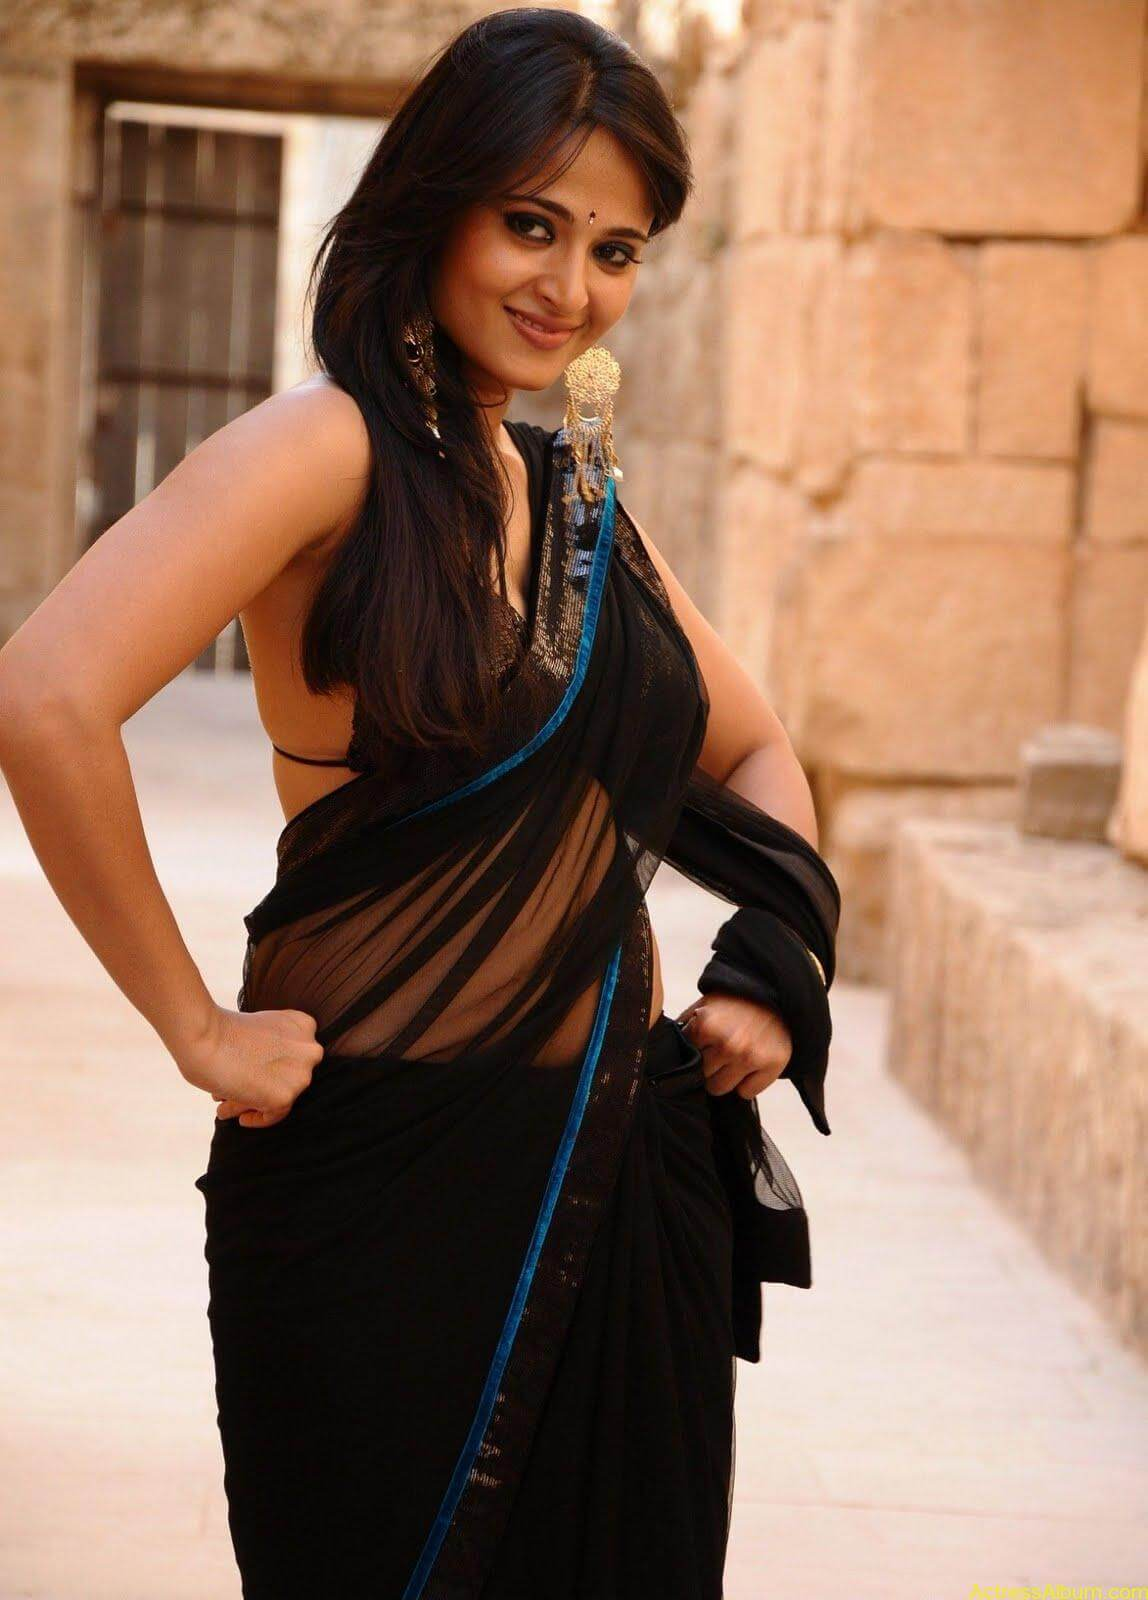 Anushka Shetty In Black Saree19